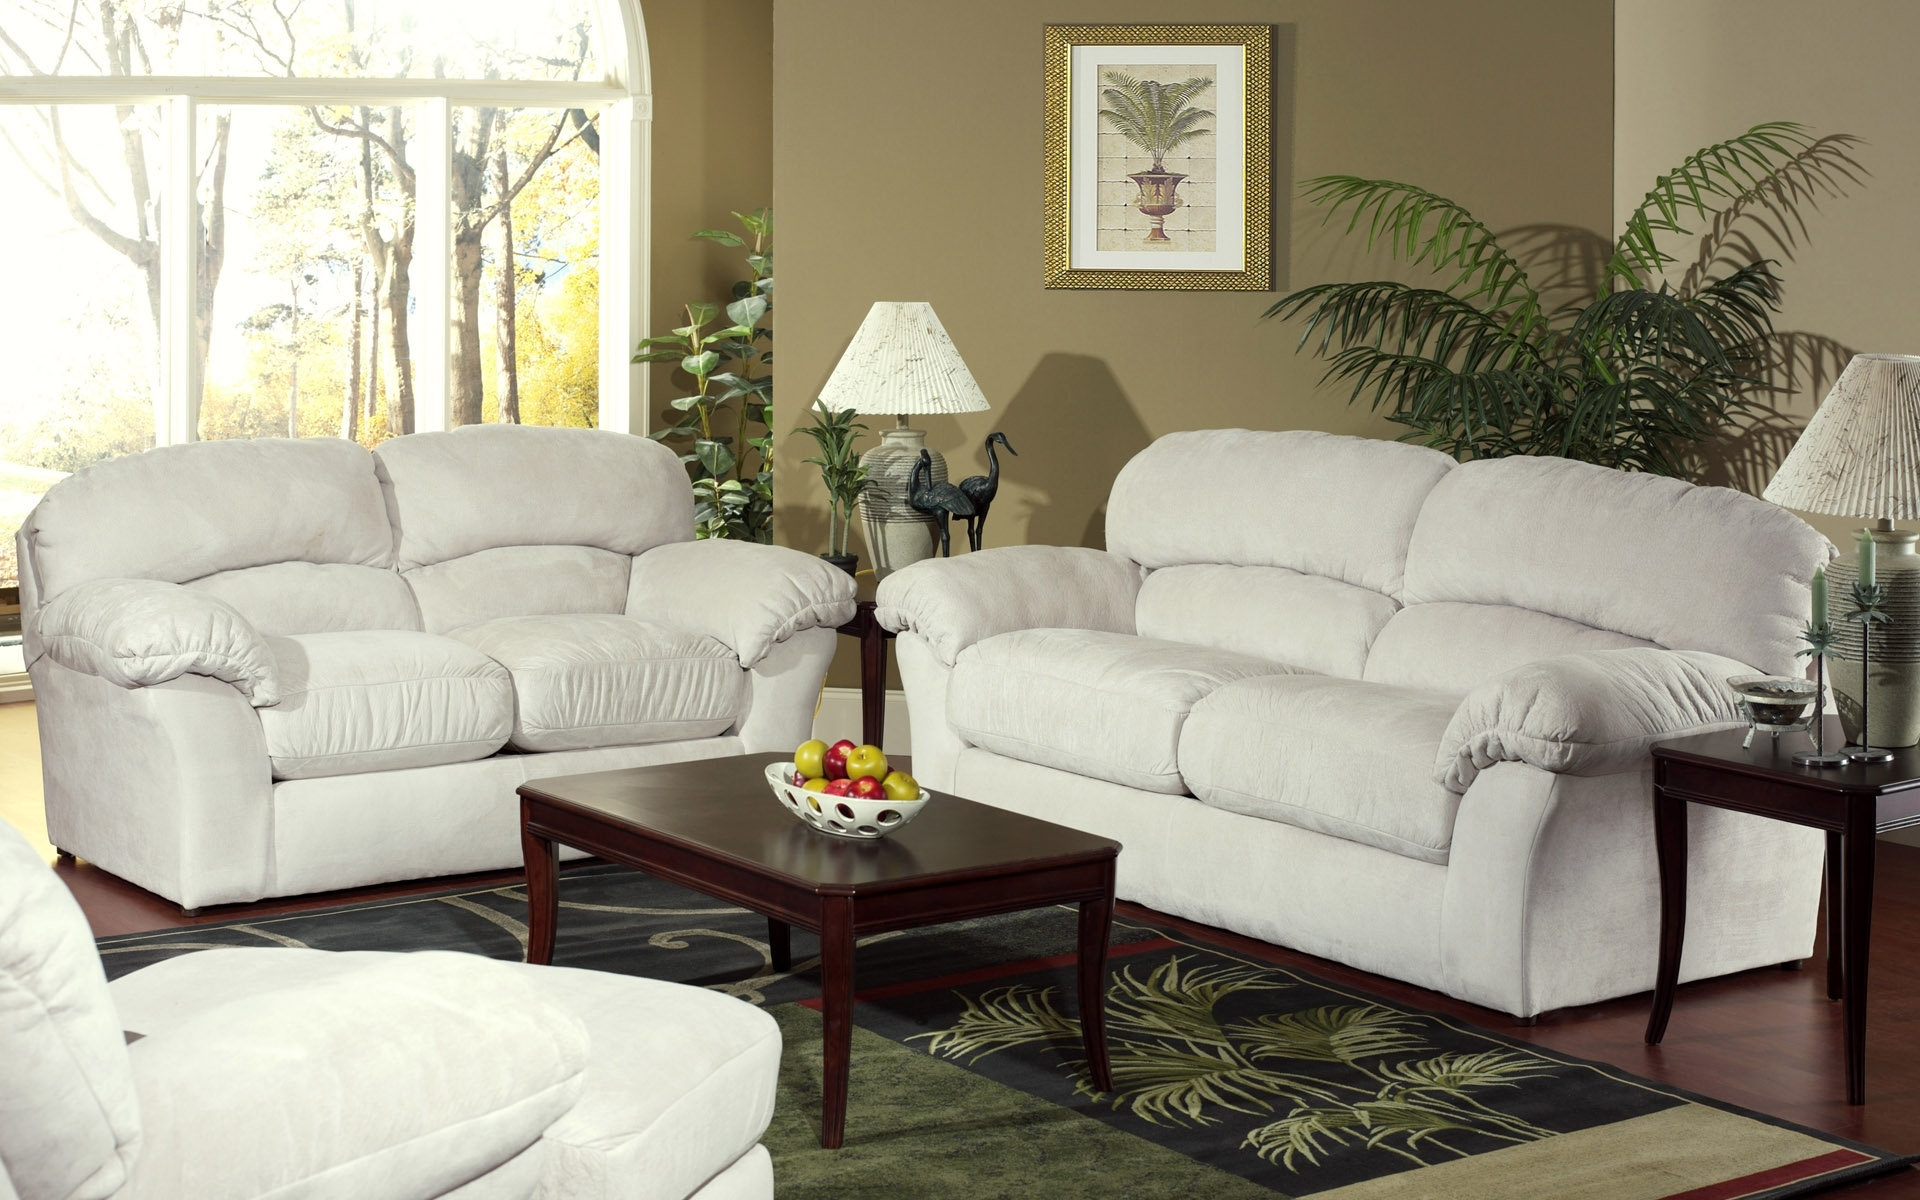 Popular Sofa Chairs For Living Room With Regard To Sofa Chairs For Living Room New At Cool Sofas And Set Sets With (View 2 of 20)